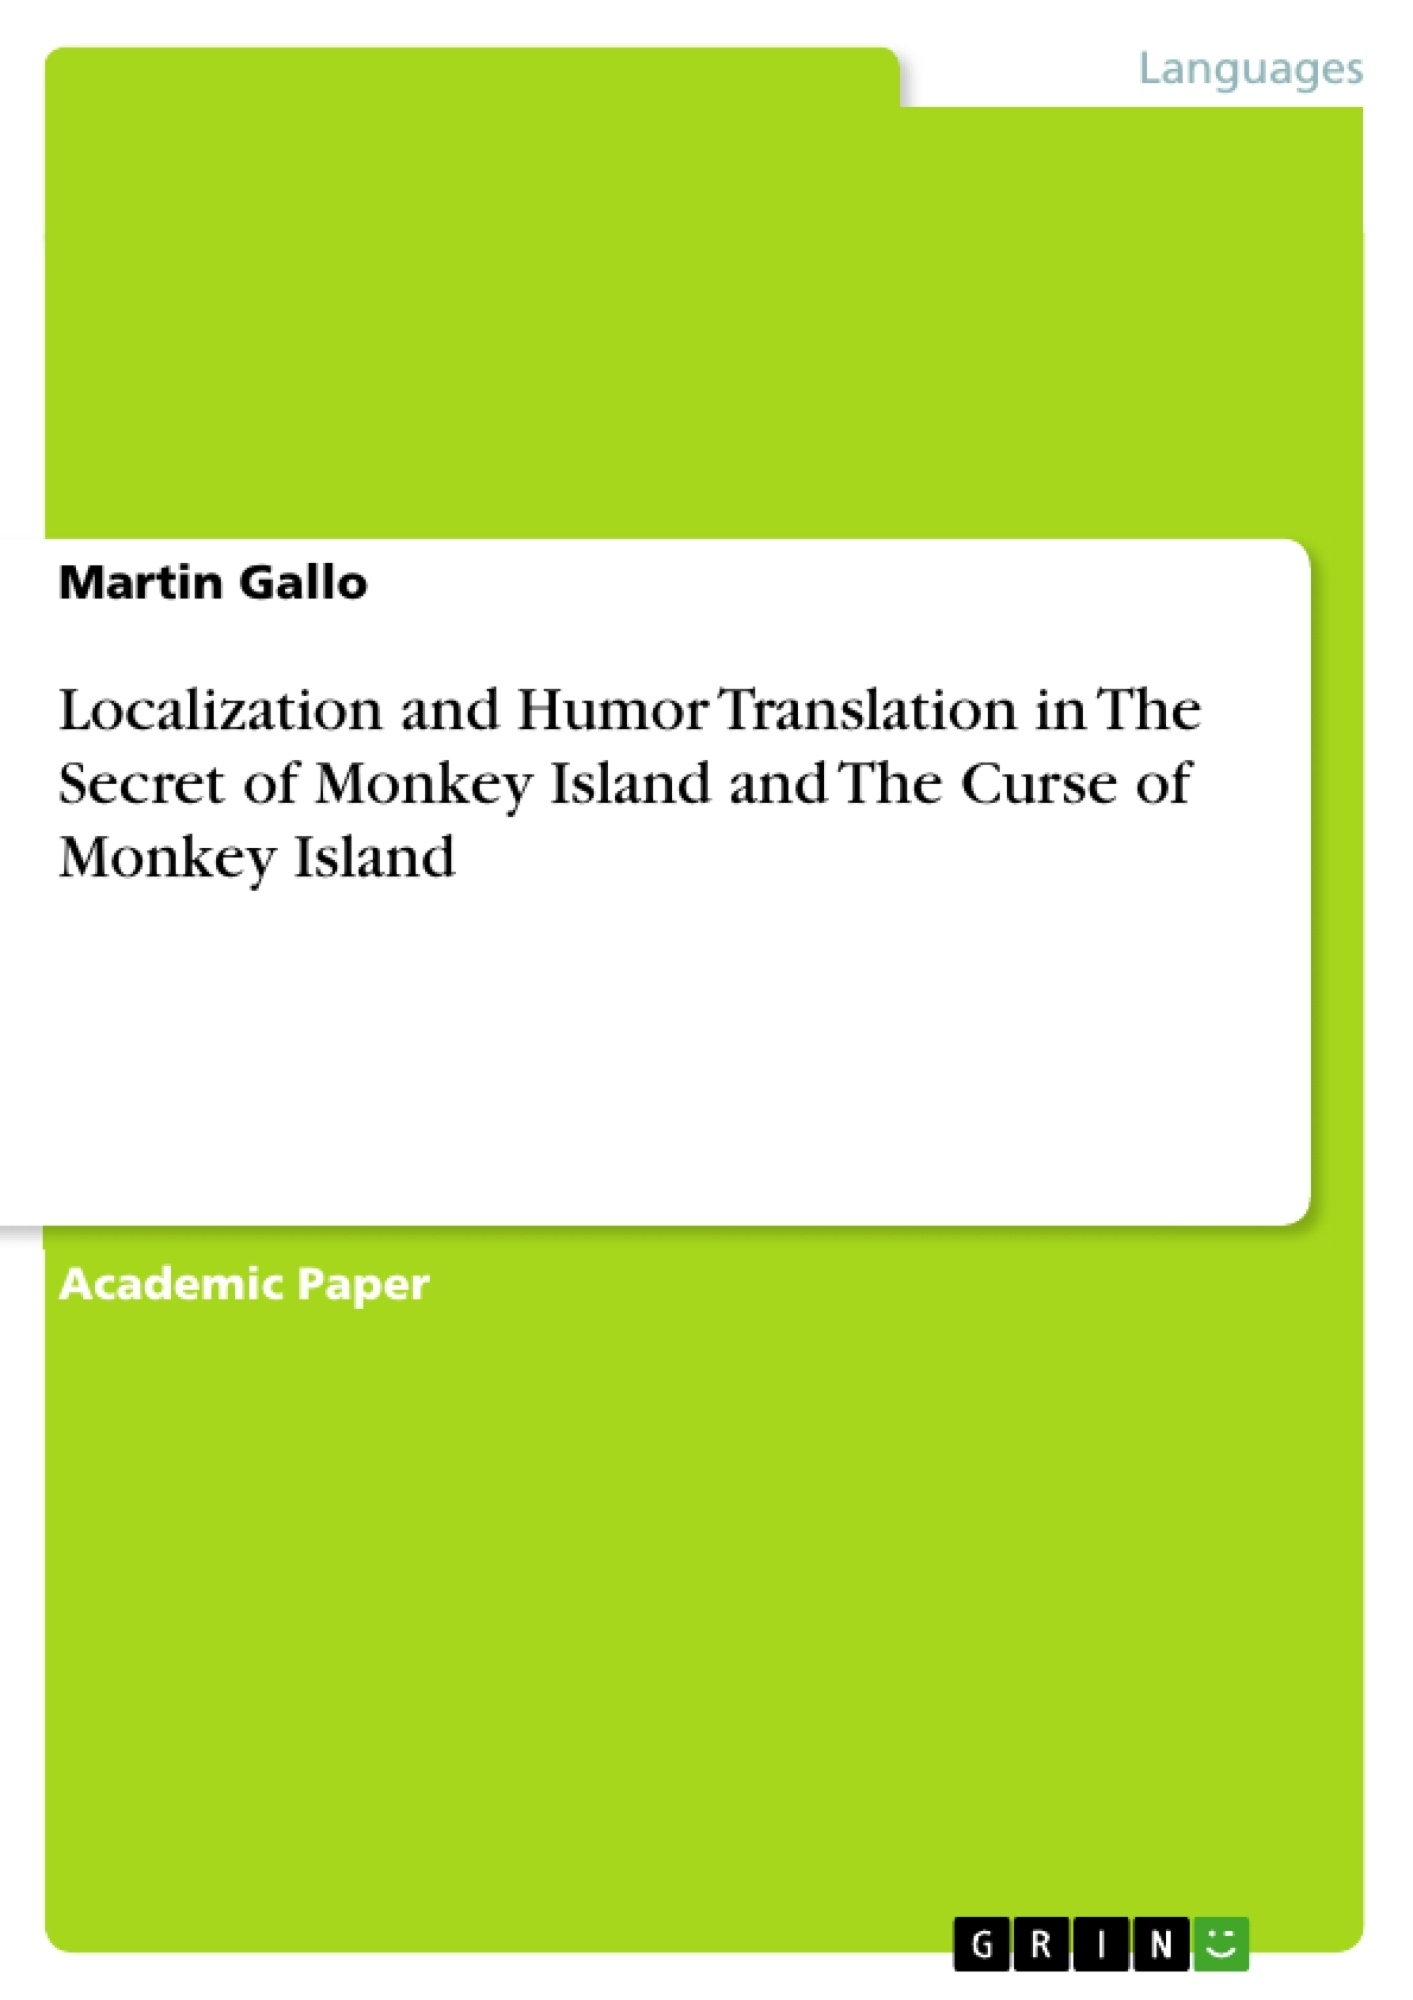 Localization And Humor Translation In The Secret Of Monkey Grin